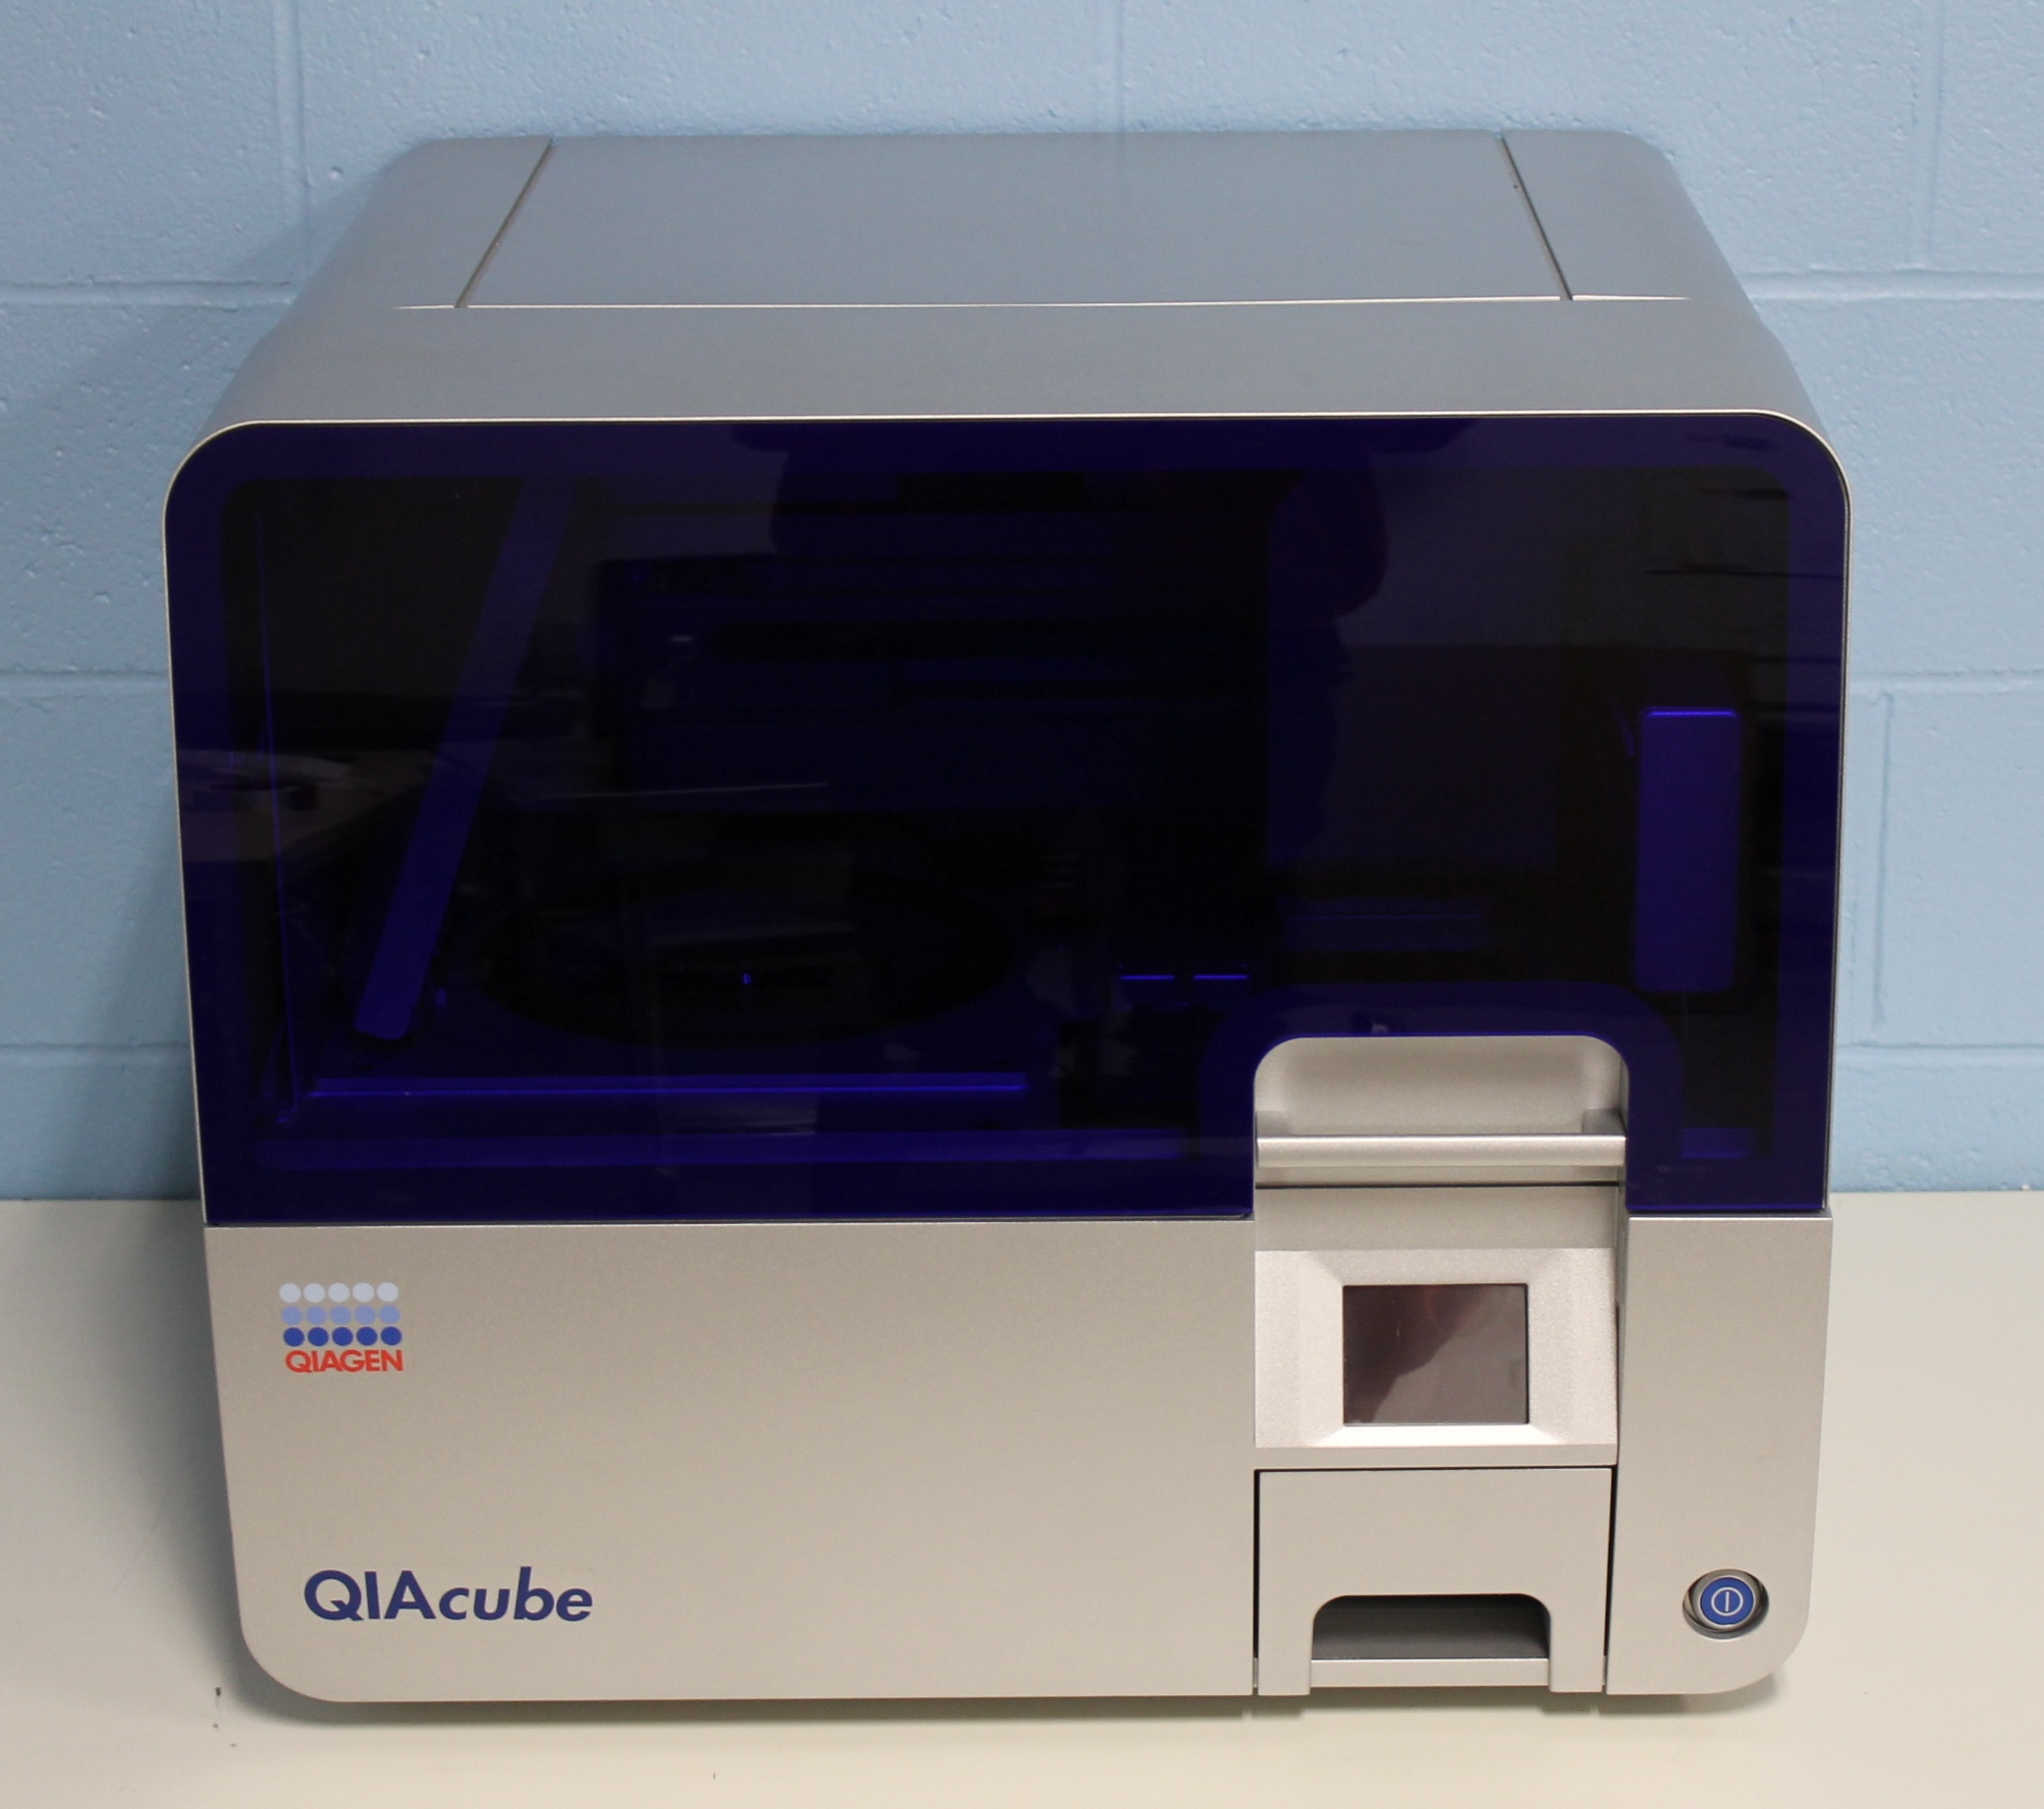 Qiagen QIAcube Robotic workstation (110 V) Image